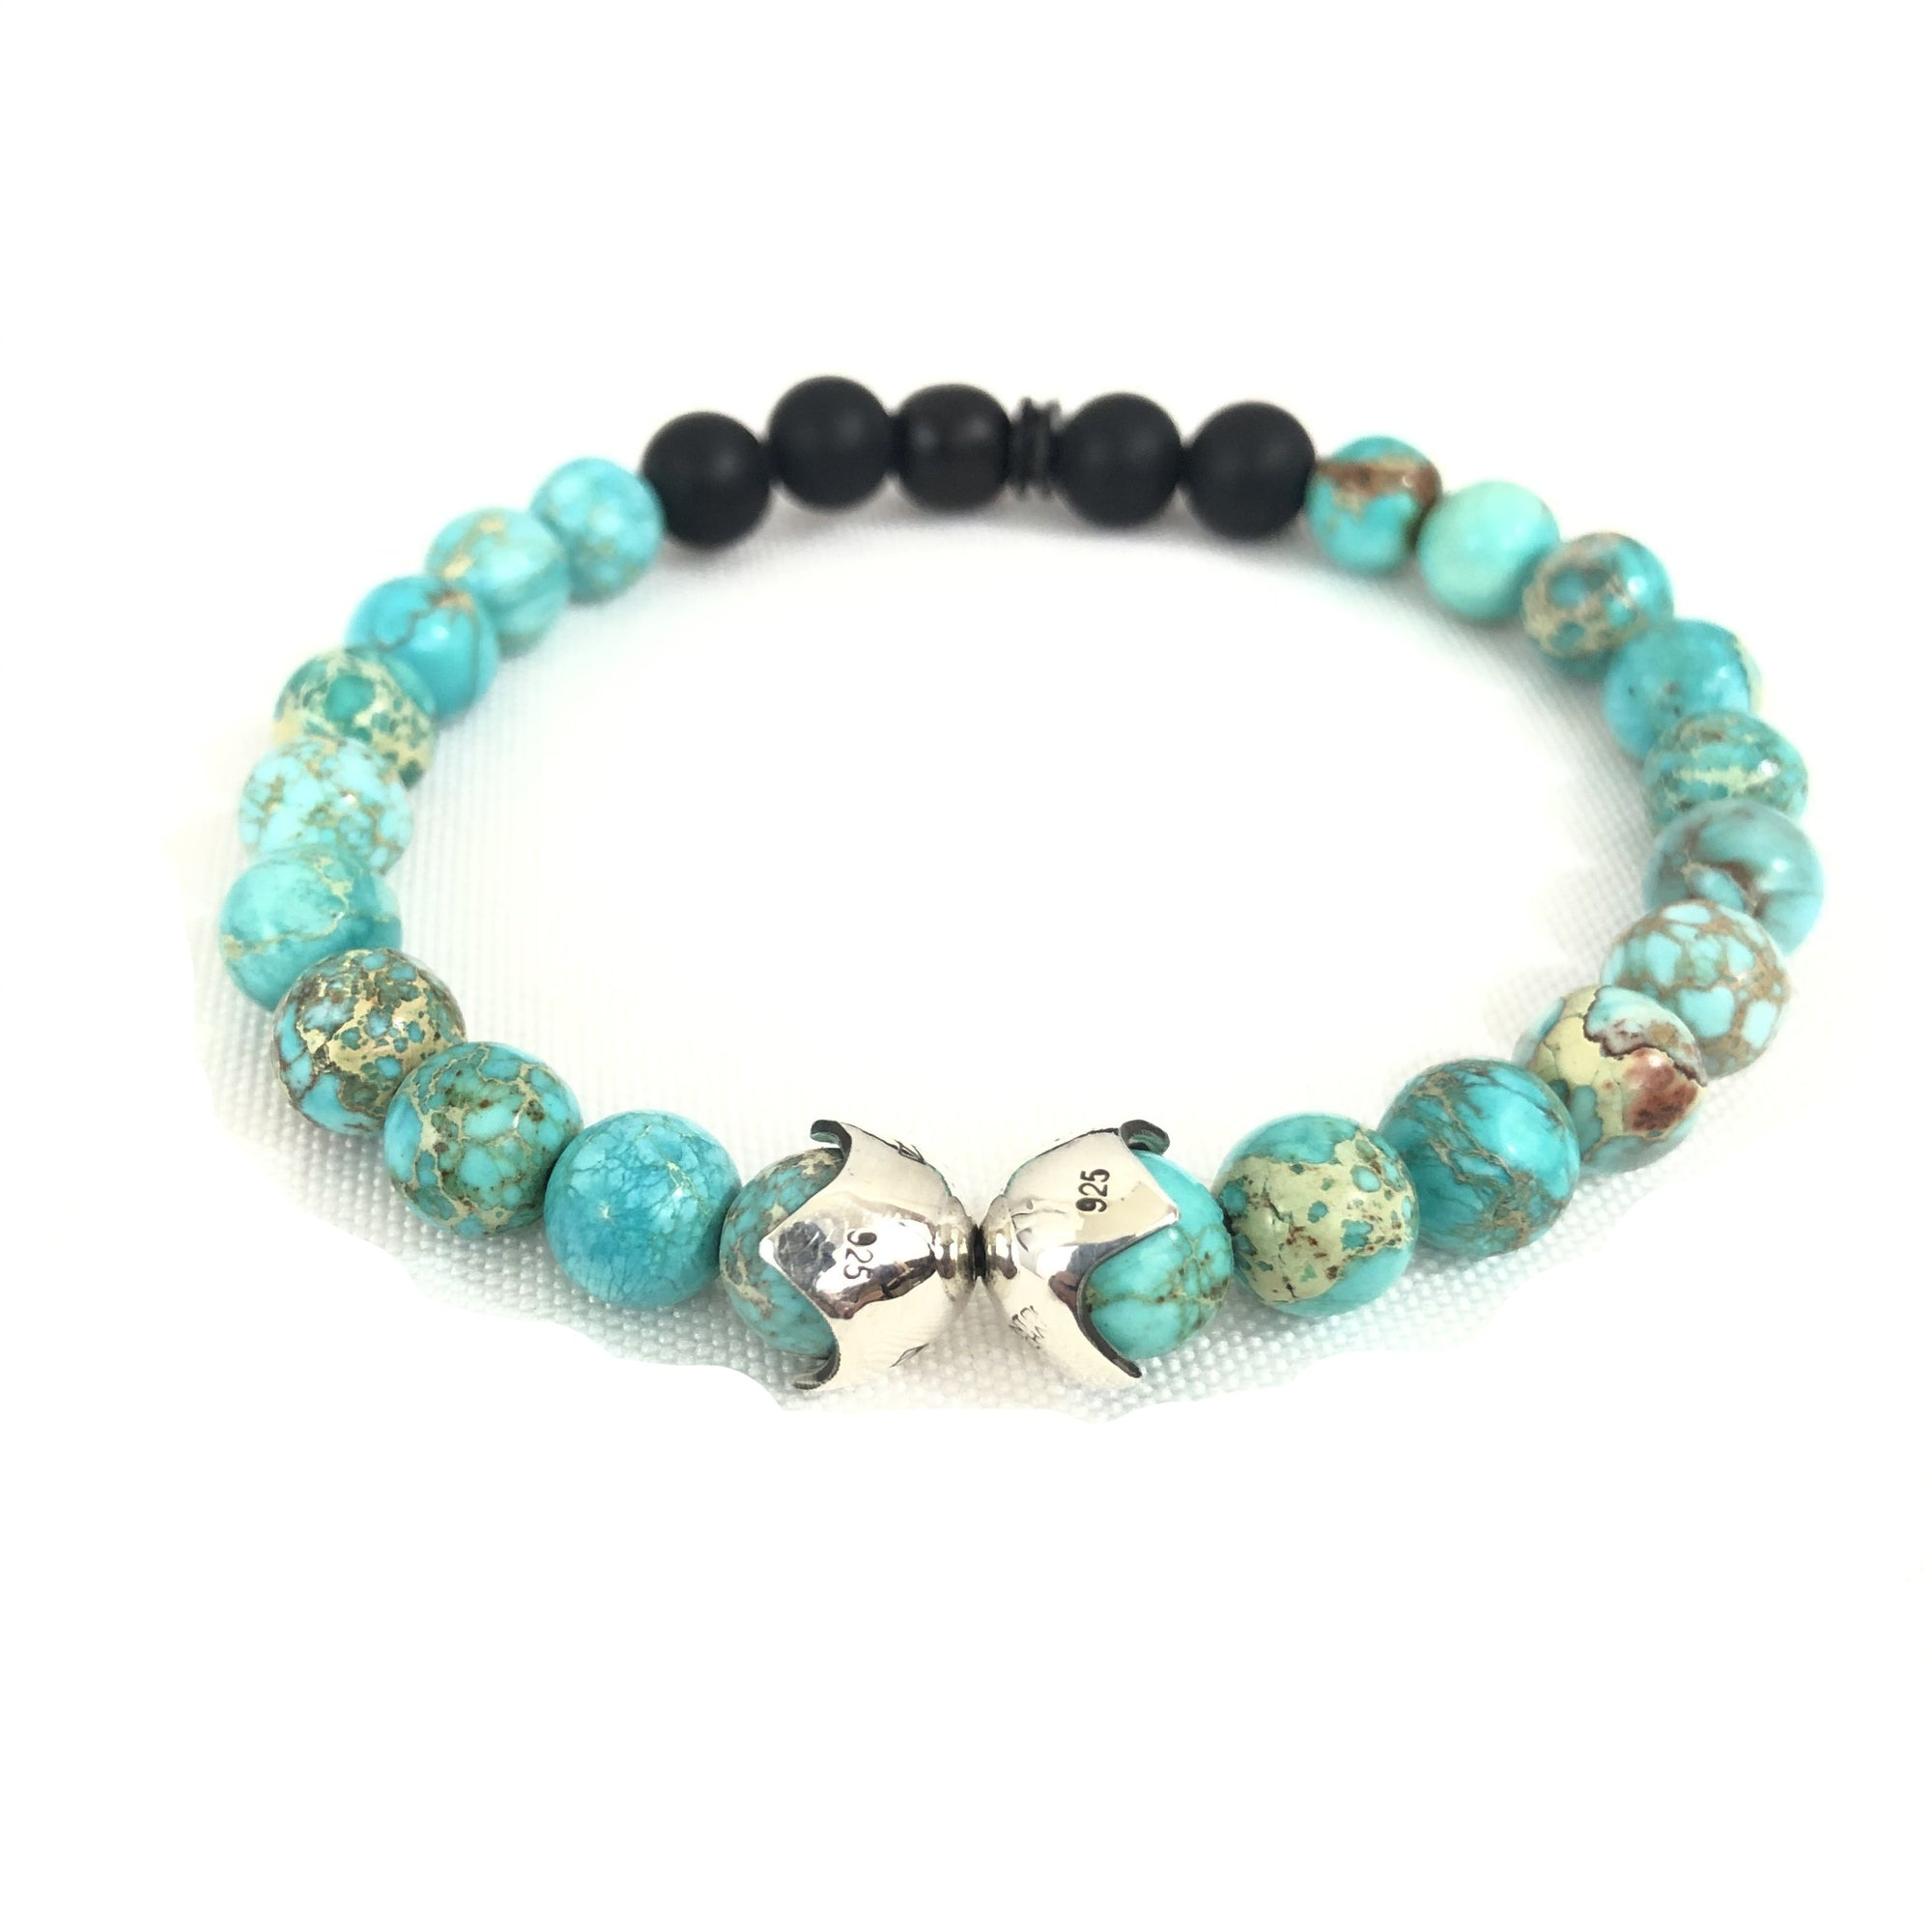 KENTON MICHAEL TURQUOISE BEAD AND STERLING SHIELD BRACELET